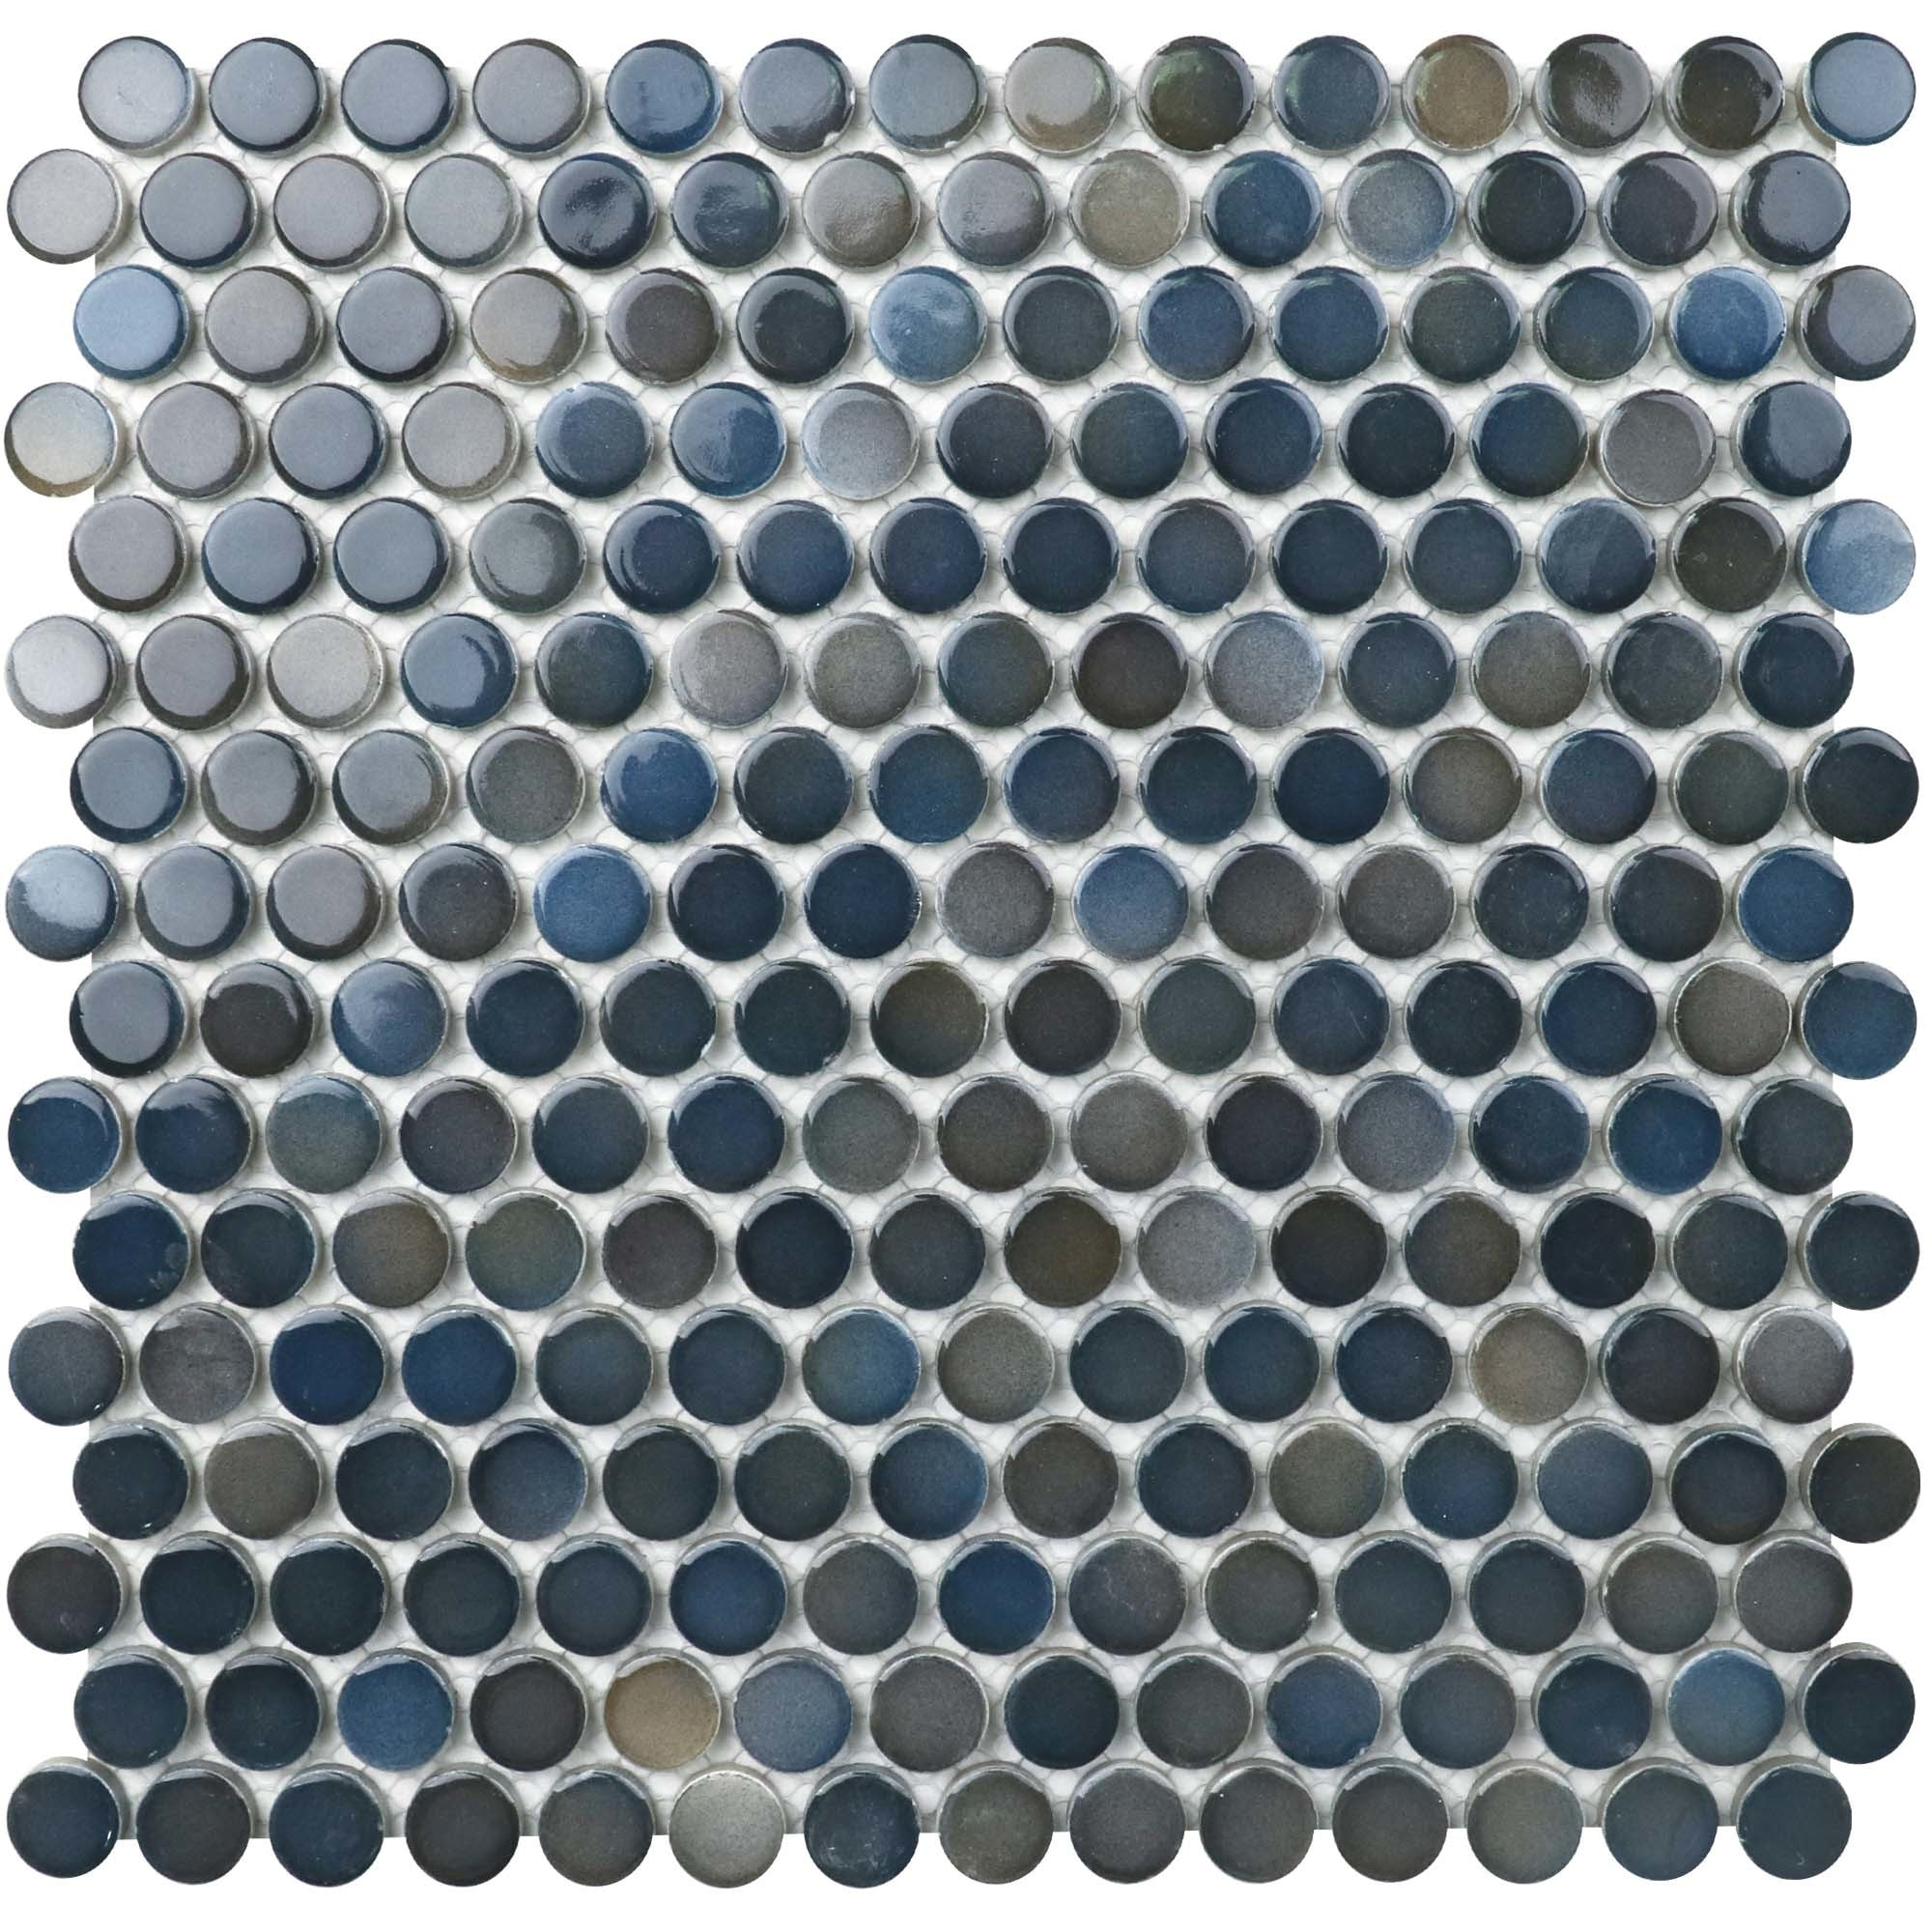 """11.6 x 11.4 x 0.24 inches / Glossy Retro 0.8"""" Penny Round Porcelain Glossy Wall Tile in Blue/Gray 0"""